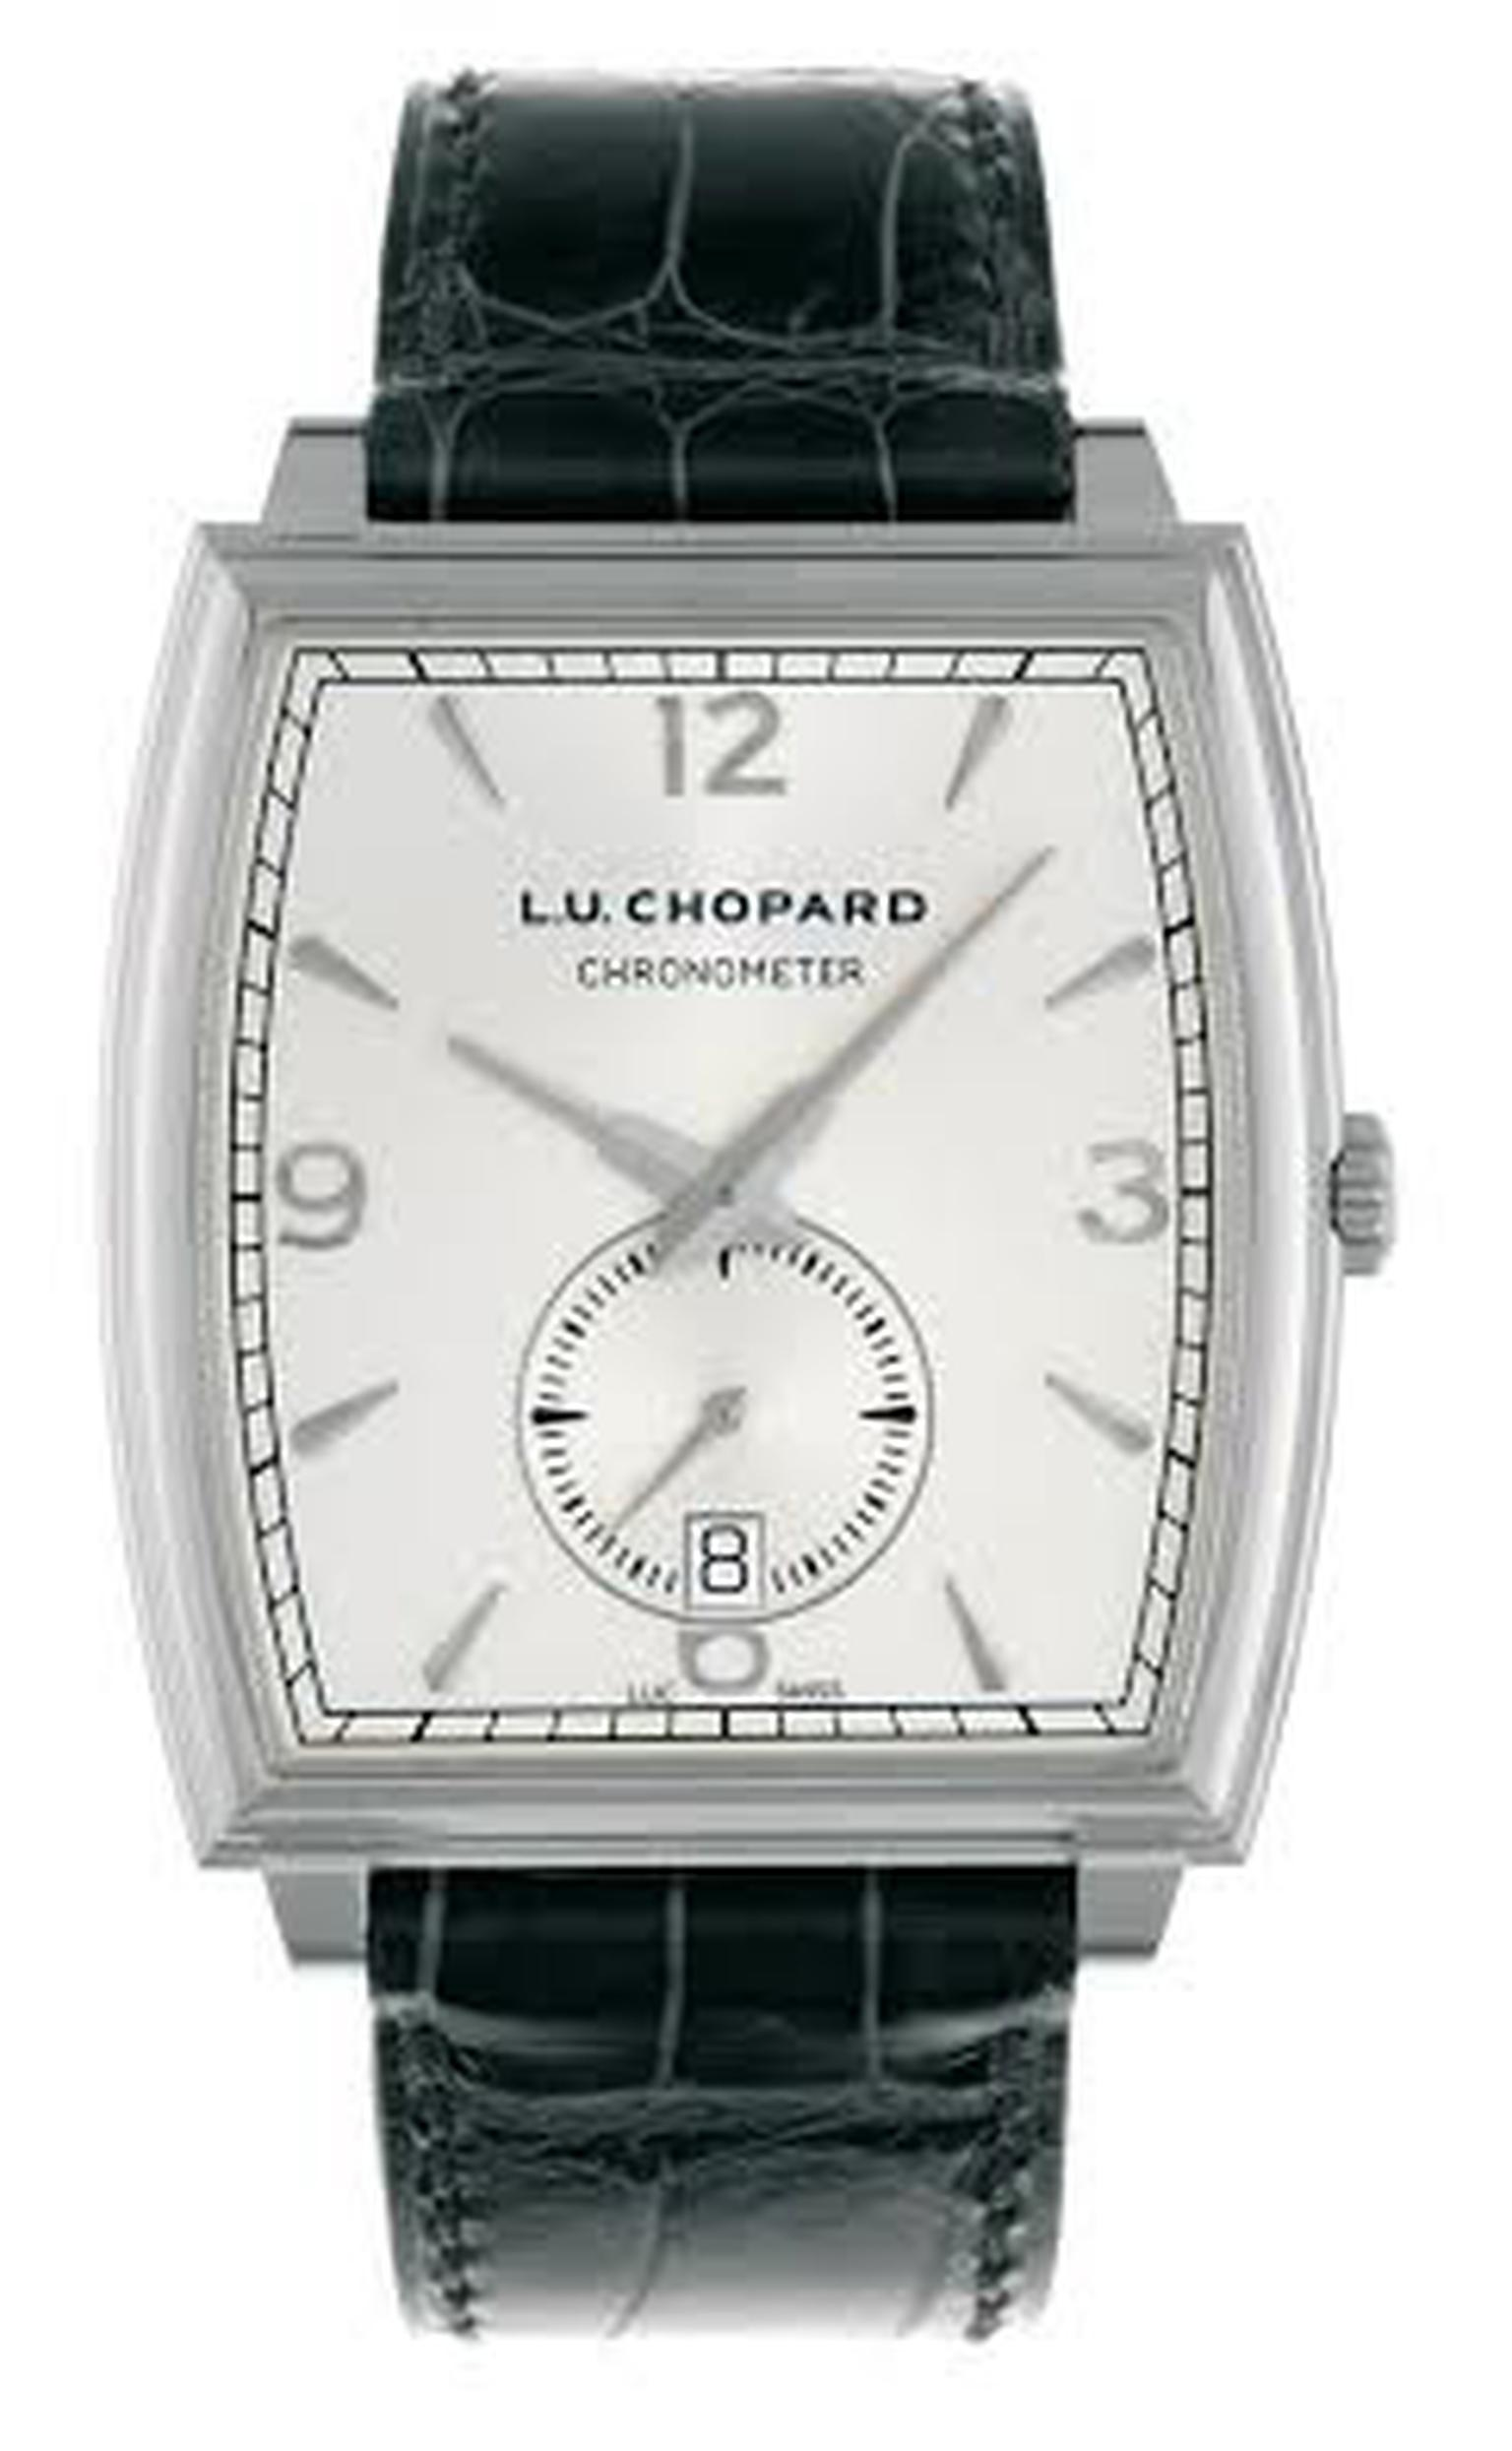 Chopard L.U.C XP Tonneau timepiece crafted in 18-carat white gold, featuring a white dial and black leather strap, worn by Academy Award Winner Matthew McConaughey during the 86th Academy Awards.